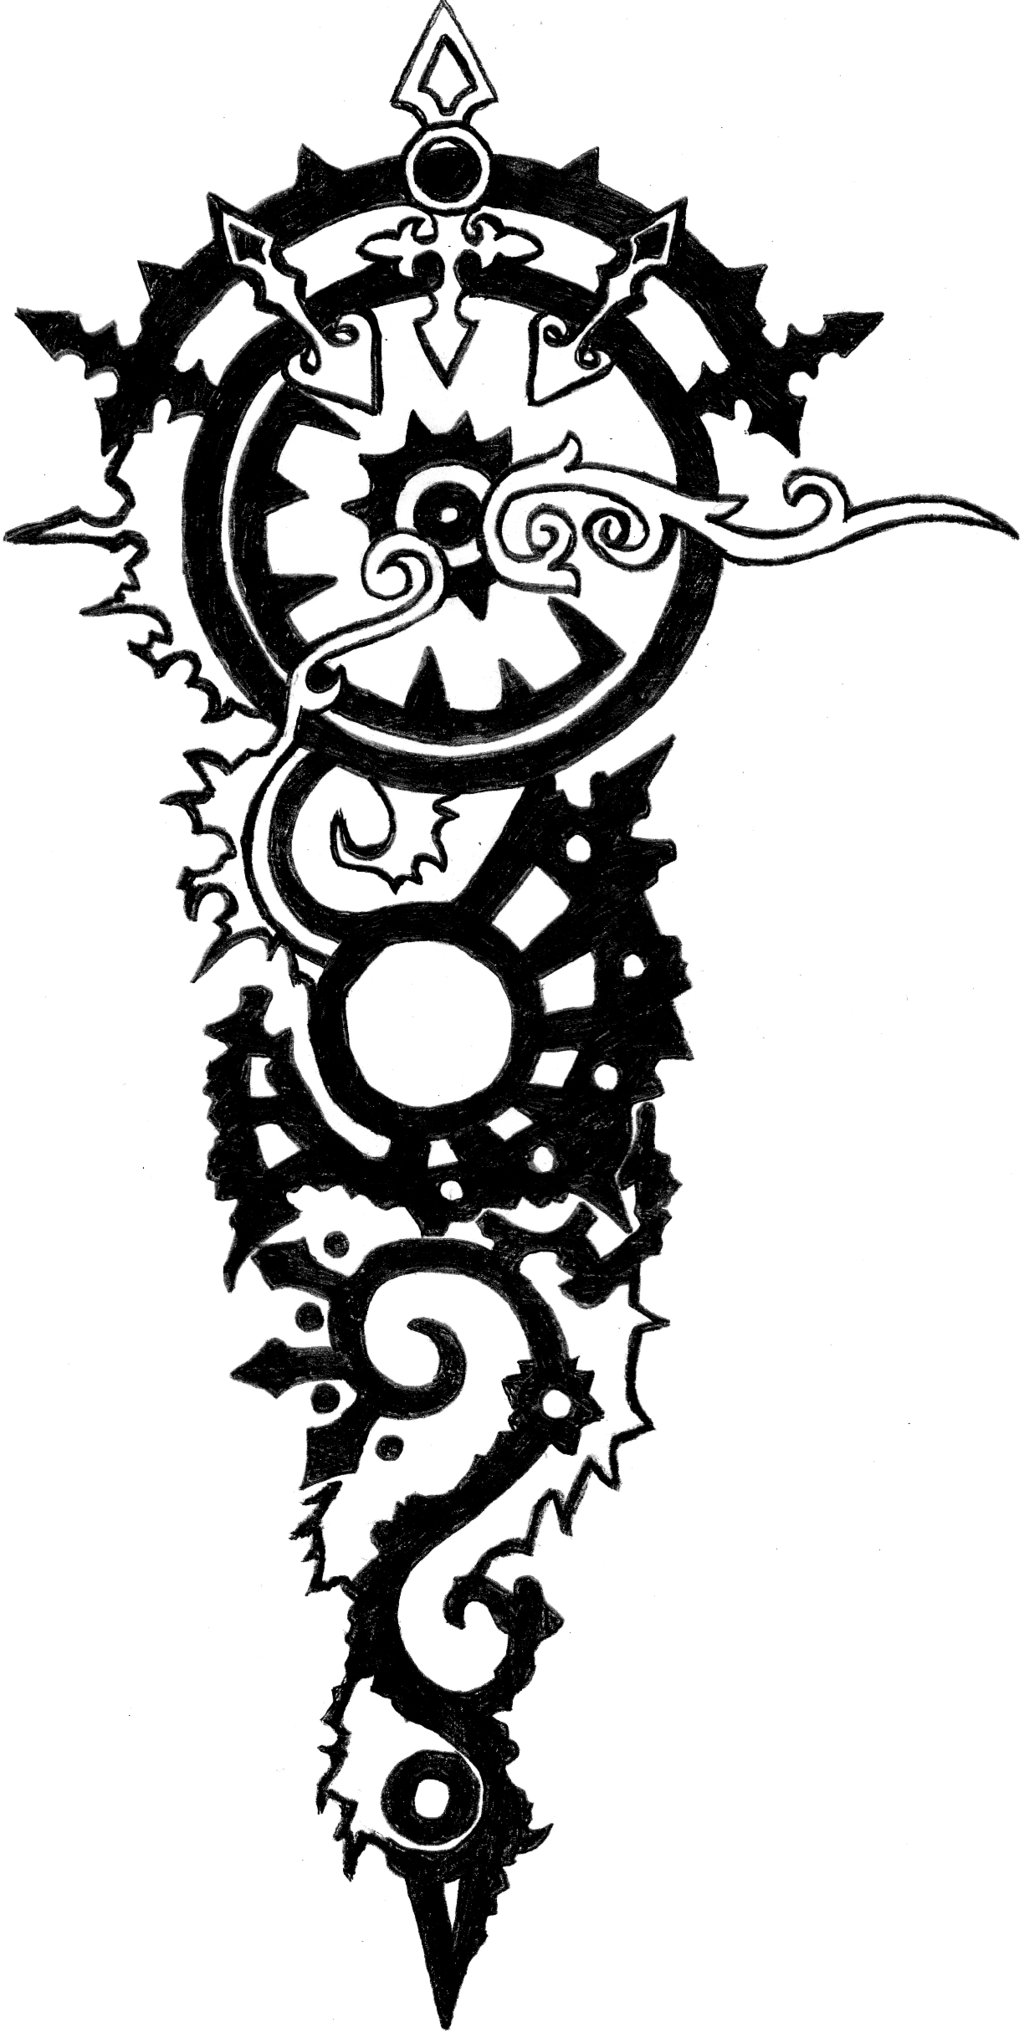 Forearm tattoo drawing at free for for Where can i get free tattoos